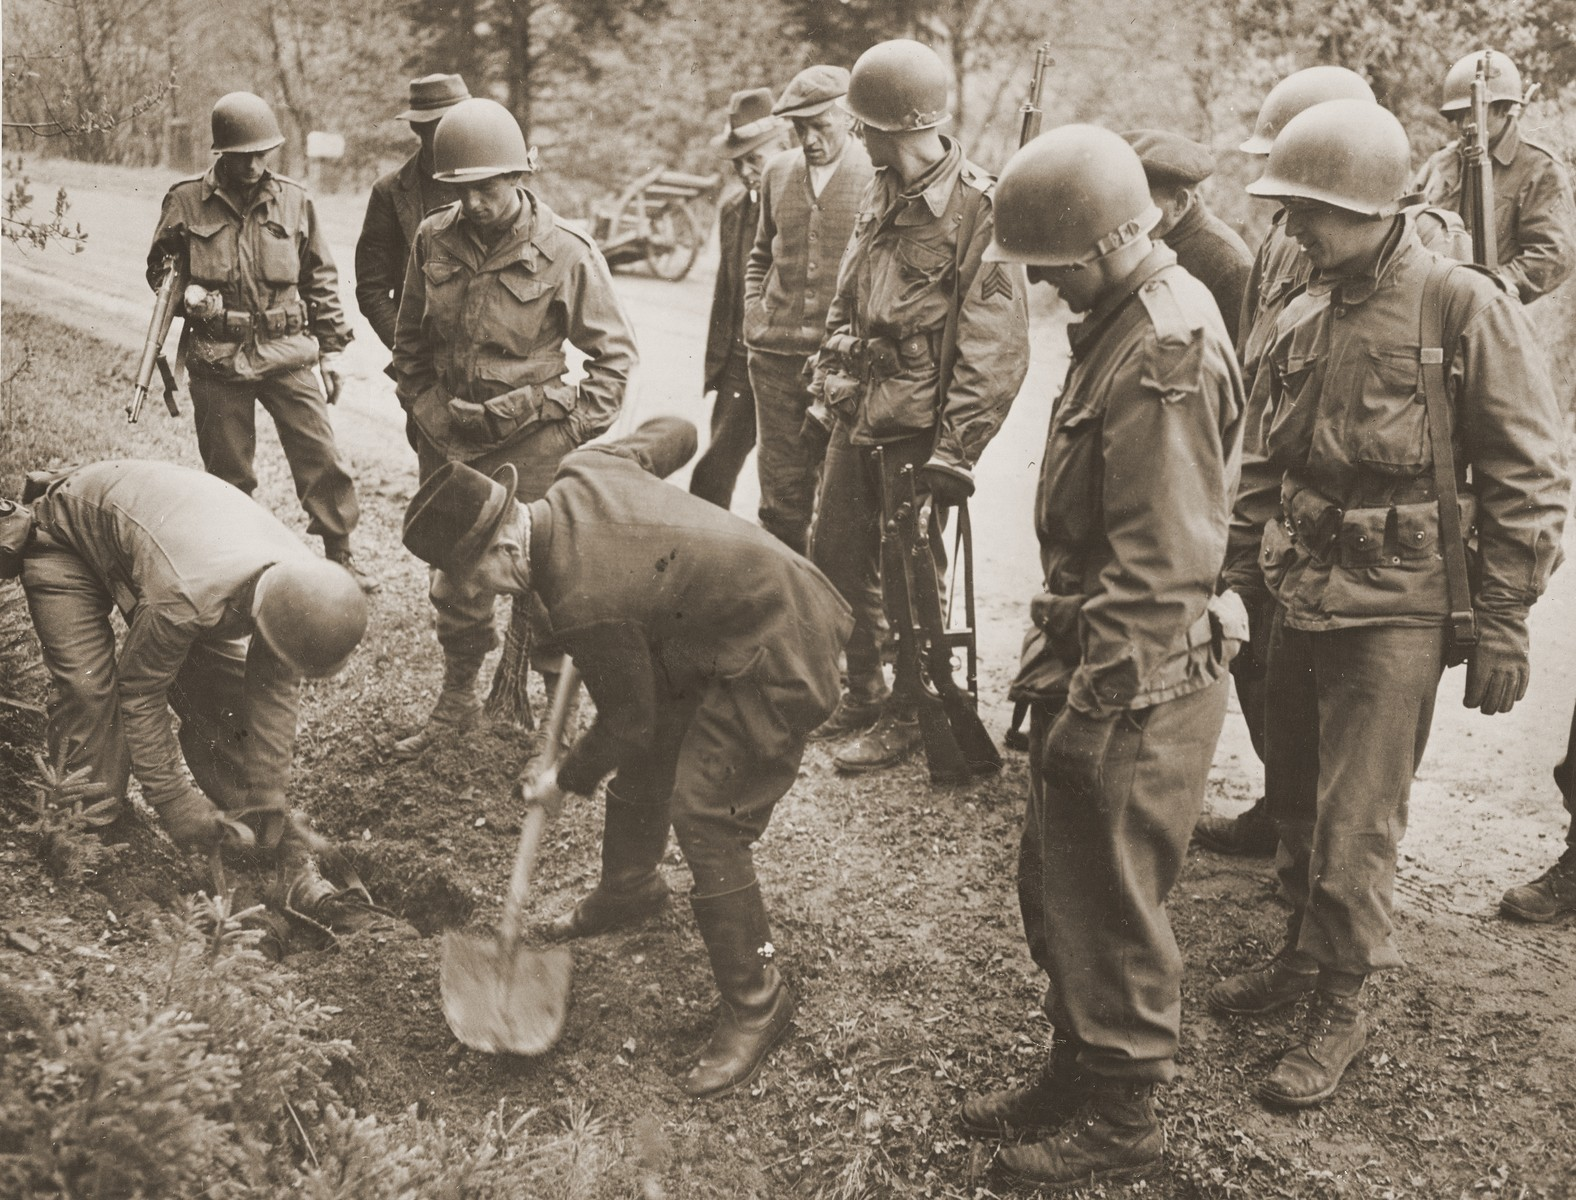 "Members of the 97th Infantry Division, investigating war crimes, force a German civilian to exhume the body of a concentration camp prisoner who was shot by the SS and buried on the side of the road while on a death march from Flossenbuerg concentration camp.  By the beginning of April 1945, Allied forces were closing in on the Flossenbuerg concentration camp, which was situated 20 kilometers NE of Weiden, approximately five kilometers from the Czech border.  Several other concentration camps had already evacuated many of their prisoners to Flossenbuerg earlier in the year, including Buchenwald and Auschwitz, so that by the beginning of May the camp and its satellites were overflowing with almost 52,000 prisoners.  Now, because the area was also about to be liberated, a series of evacuation transports was sent southwest by train in the direction of Dachau.  Allied planes already active in the area had successfully destroyed a number of rail lines and locomotives, effectively delaying many of the transports, or forcing them to take alternate routes.  A number of the trains laden with prisoners were even fired on while in transit, accidentally killing prisoners.  Eventually, most of the prisoners were forced to continue their journey on foot because of the destruction to the German rail system.  During these ""death marches,"" numerous prisoners were killed by the SS for lagging behind or stumbling.  When ammunition ran short after several days of marching, the slower and weaker prisoners were beaten to death rather than shot.  Some of the bodies were buried by prisoners who were kept at the back of the group for exactly this purpose.  Others were just left on the side of the road."